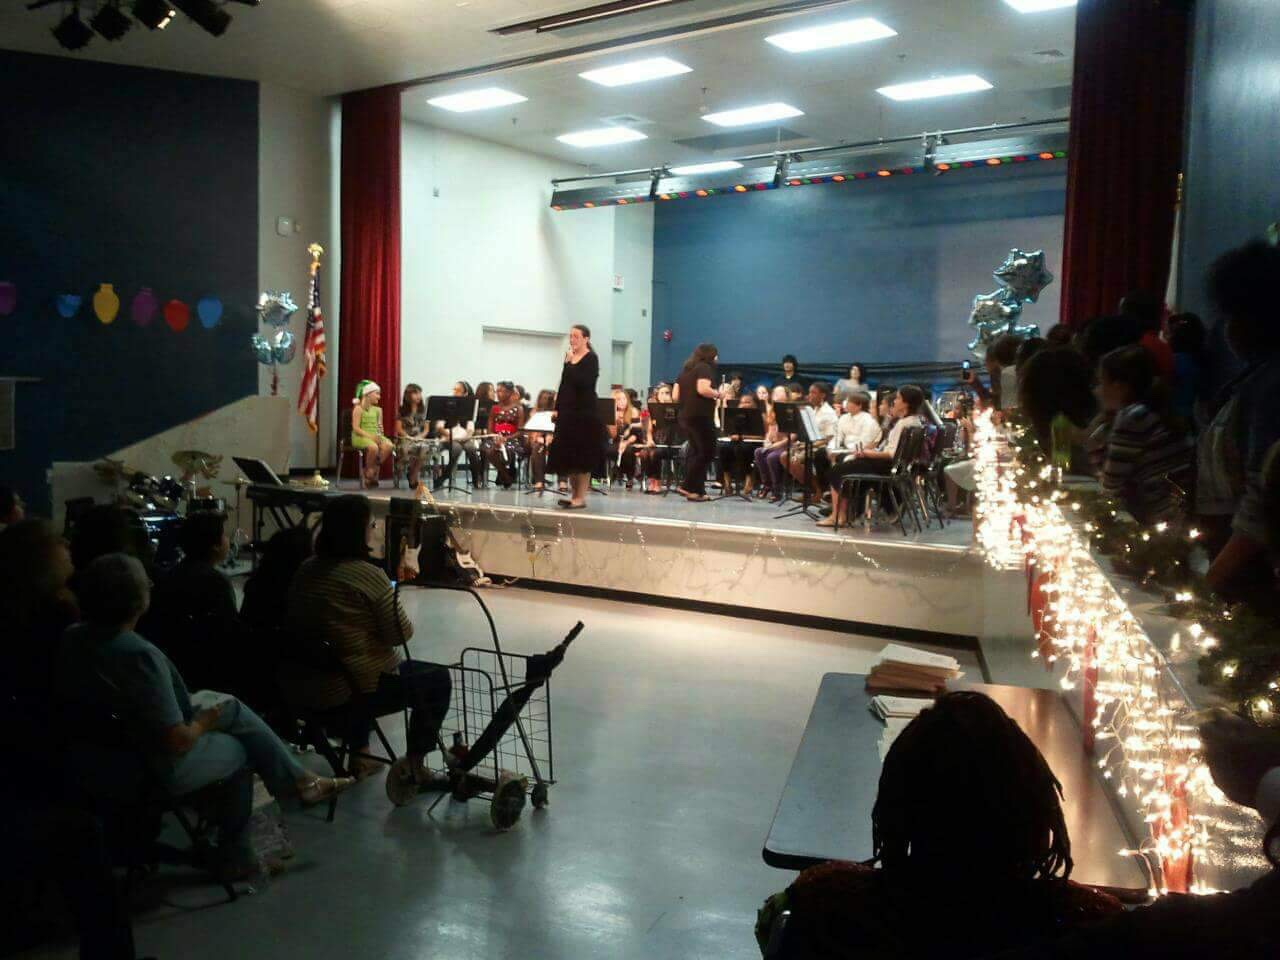 The view from the audience is never the view from backstage. (Winter Concert, circa 2011)